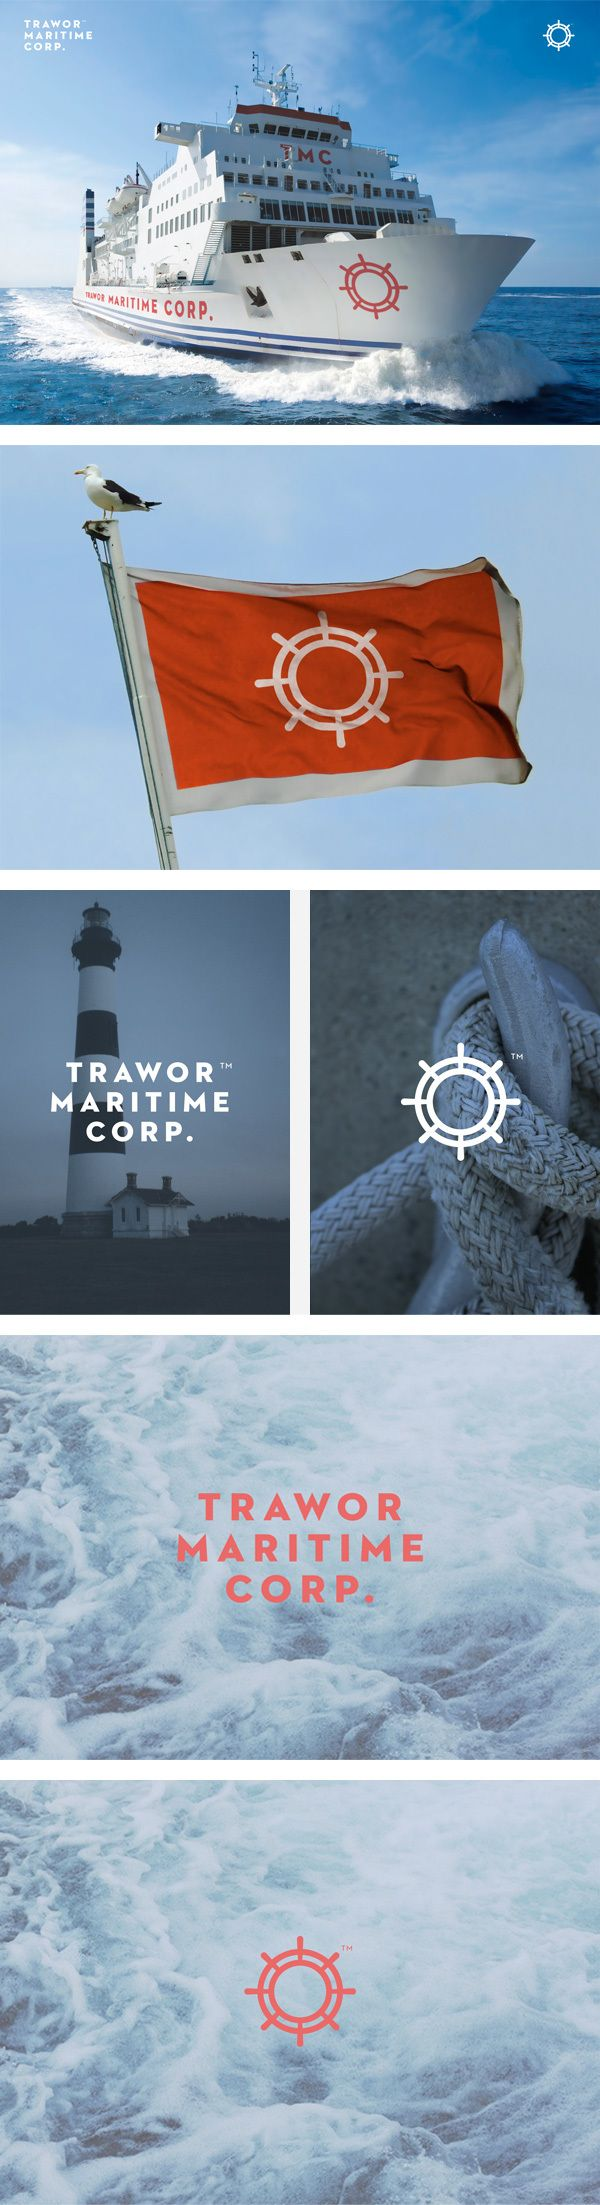 86 best - SEA - images on Pinterest   Graphics, Graph design and Posters